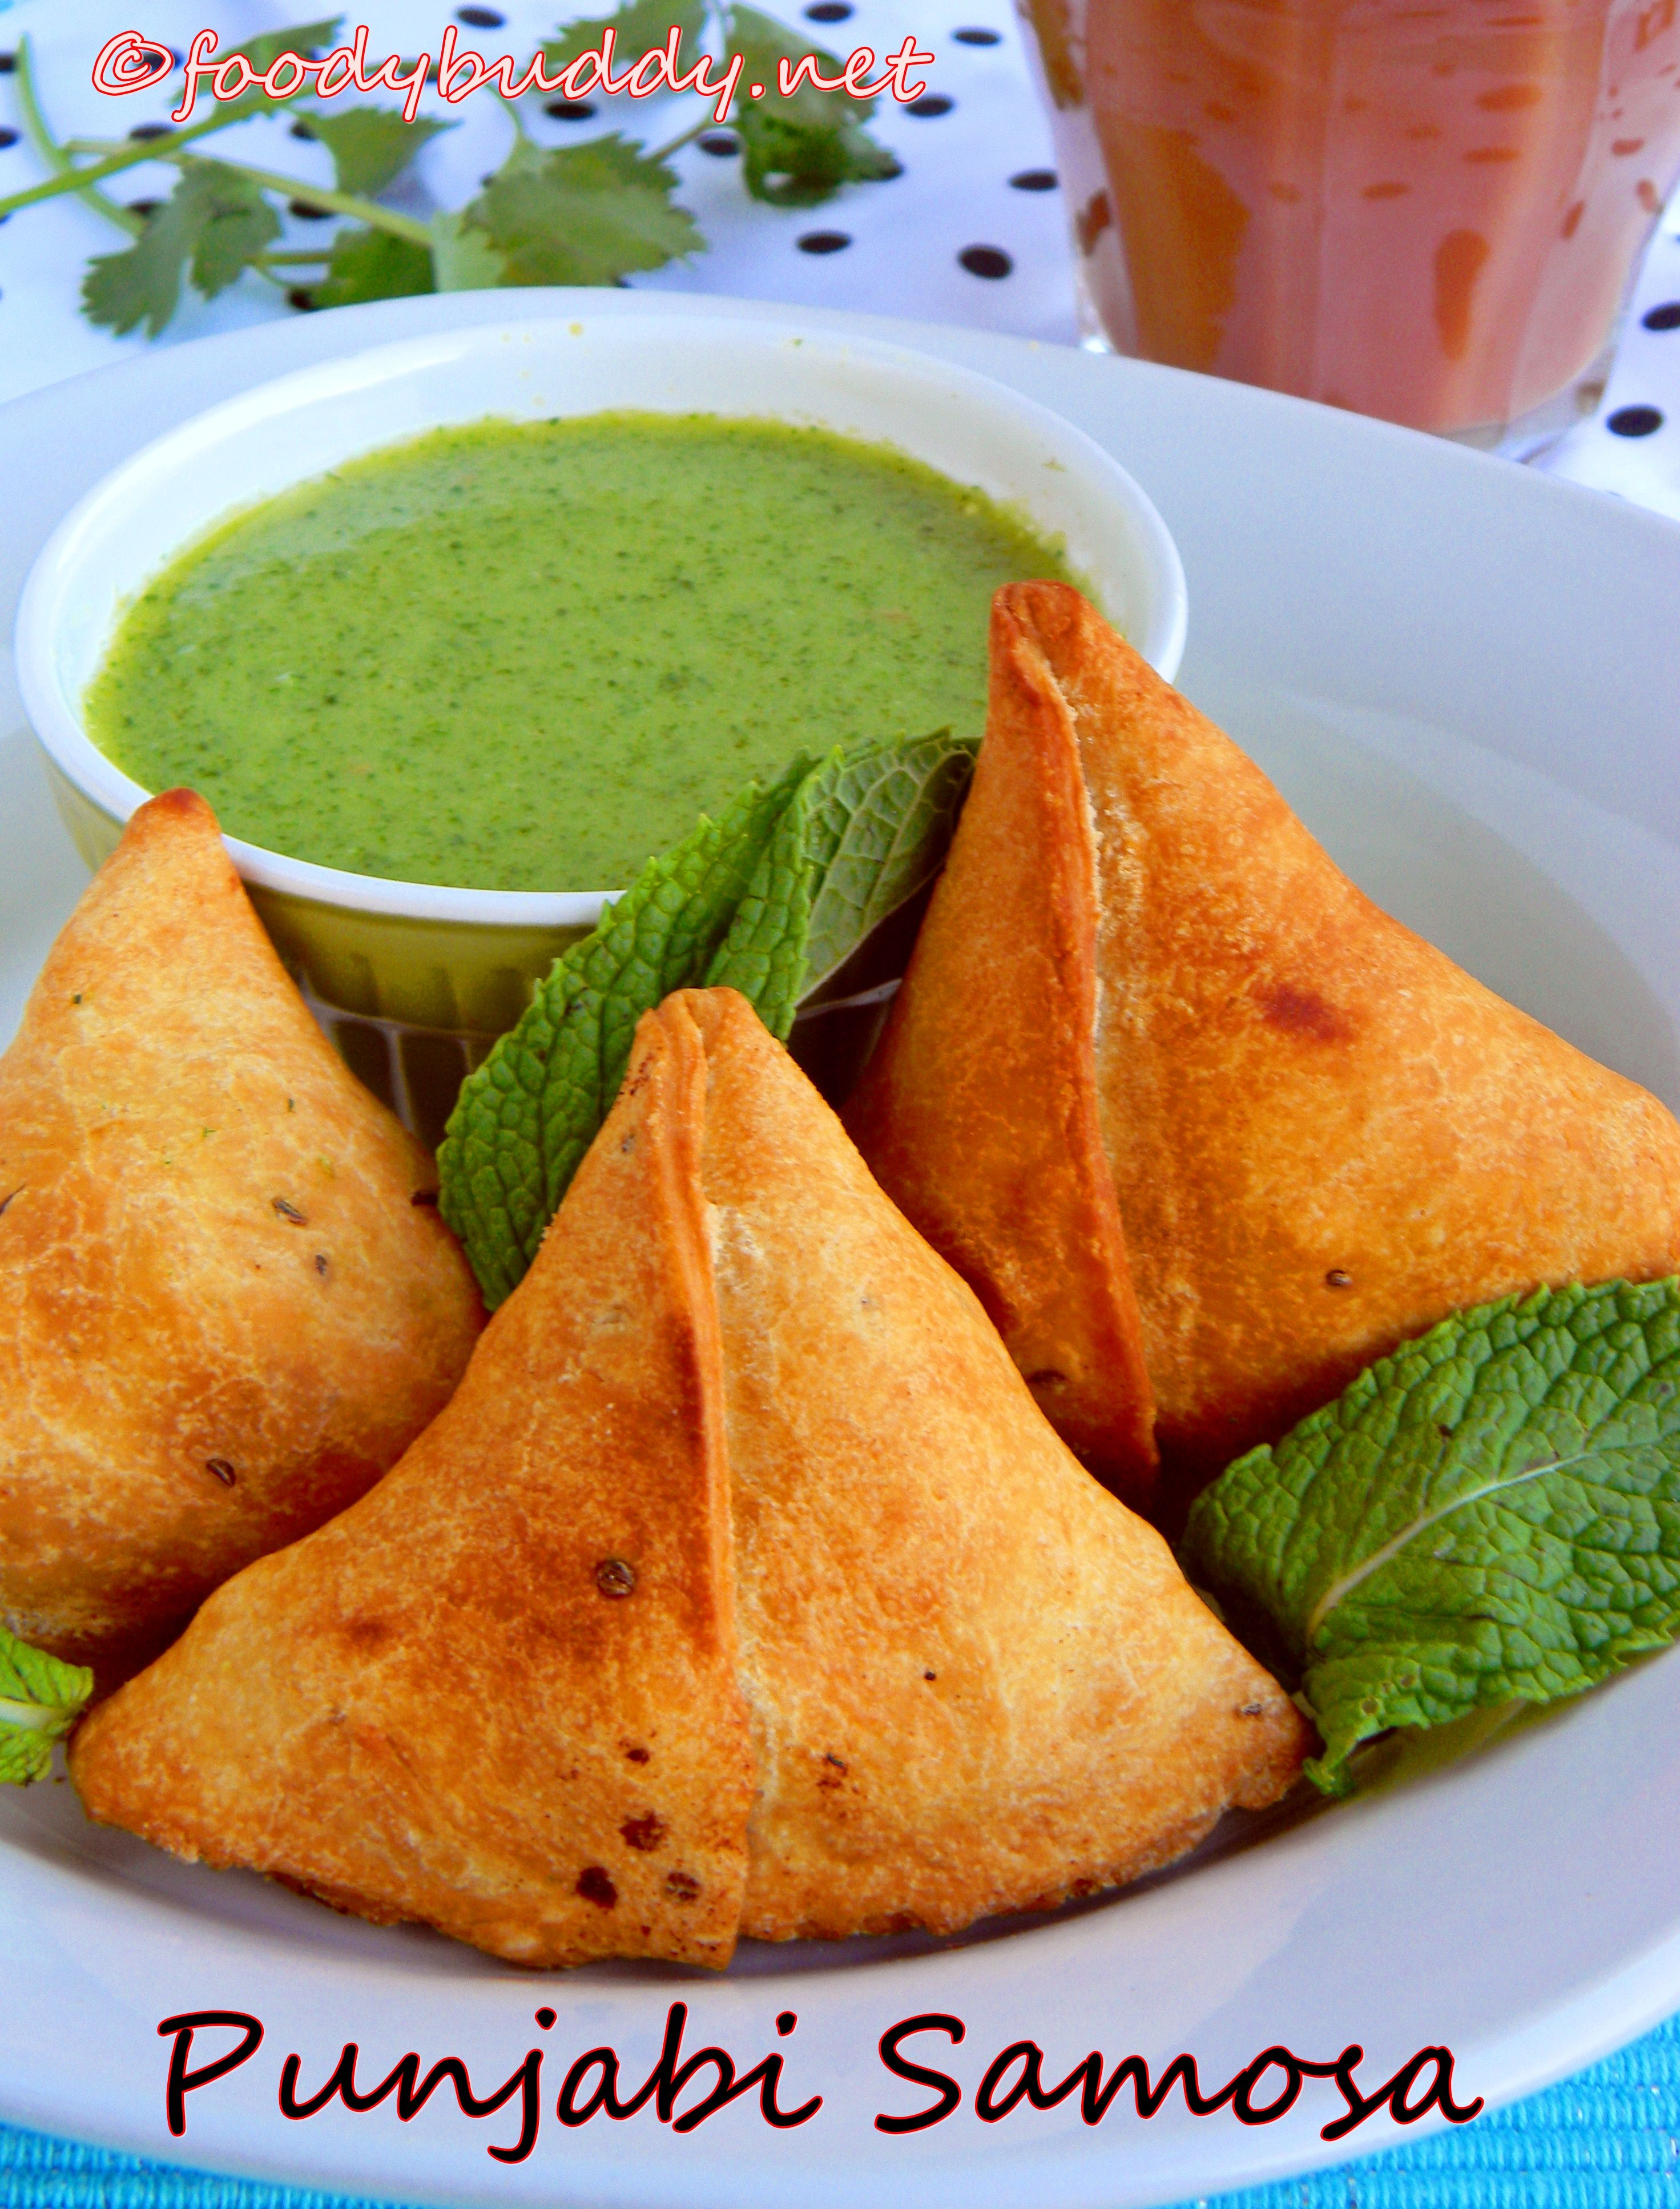 Samosa with potatoes and peas an indian pastry excellent samosa with potatoes and peas an indian pastry excellent appetizers goes well with forumfinder Image collections